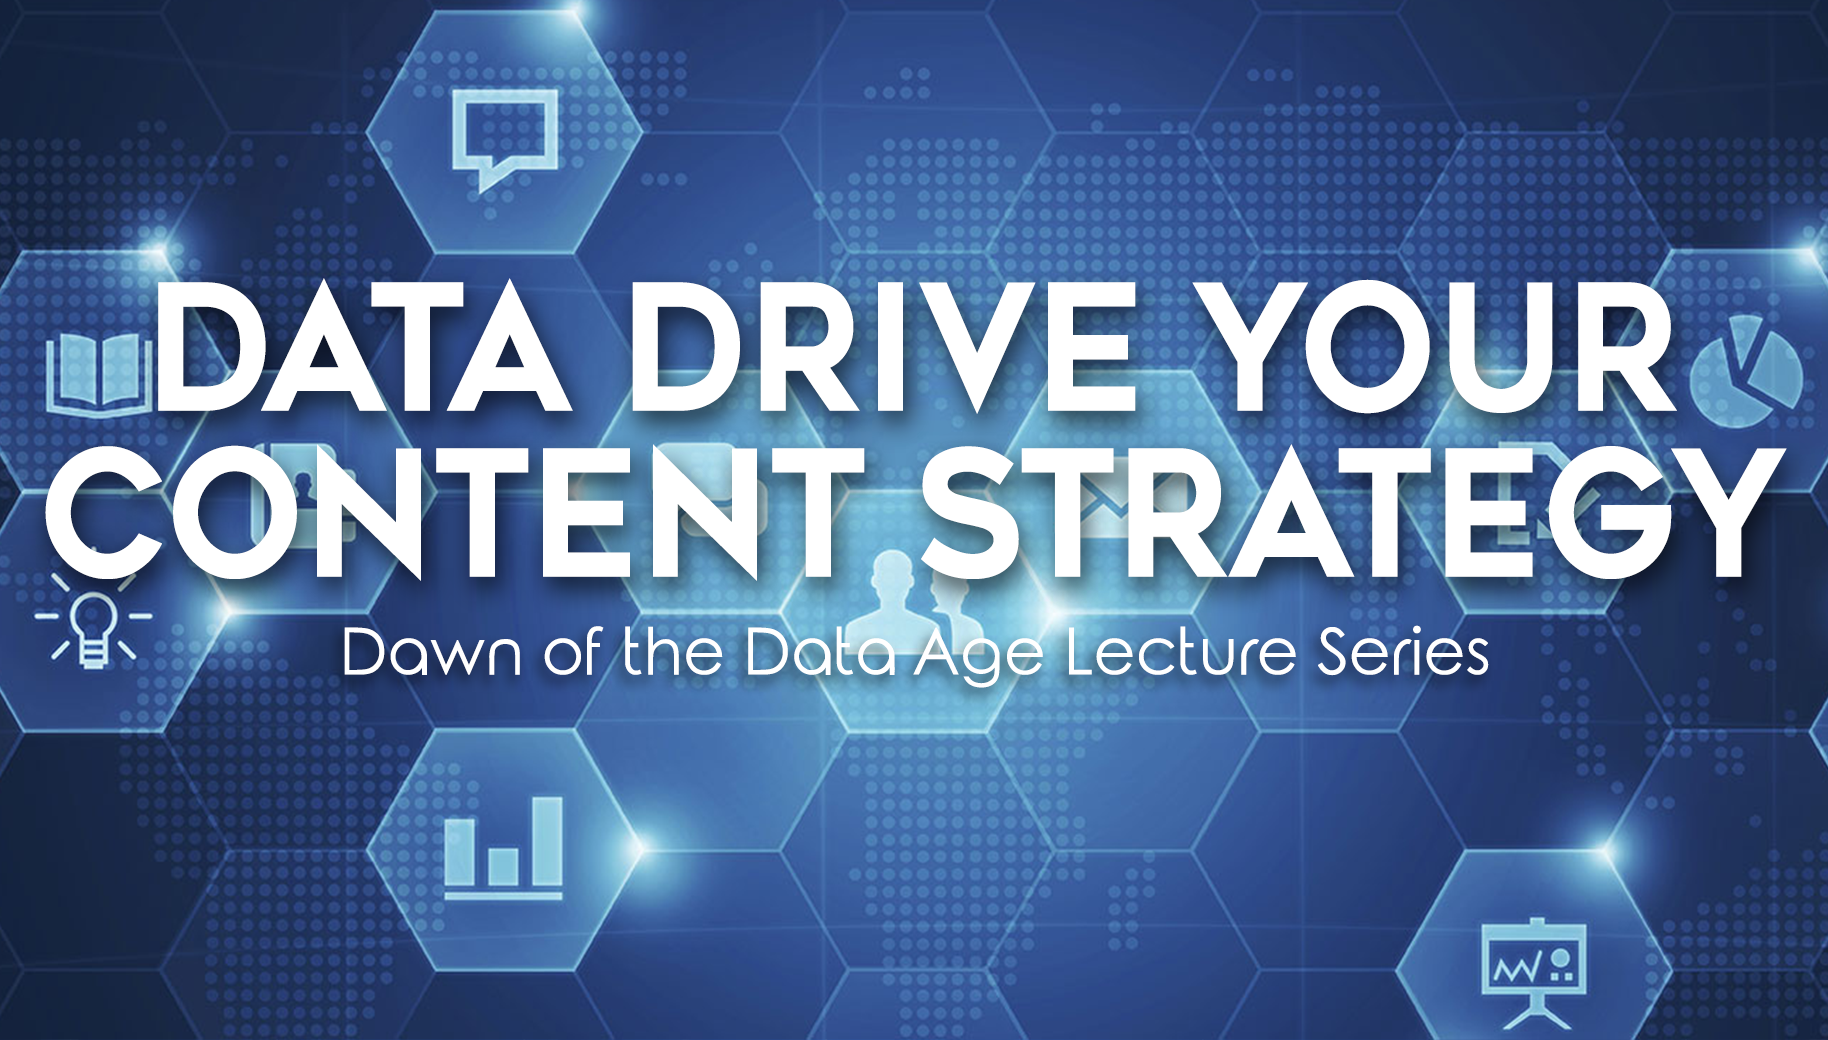 Data Drive Your Content Creation